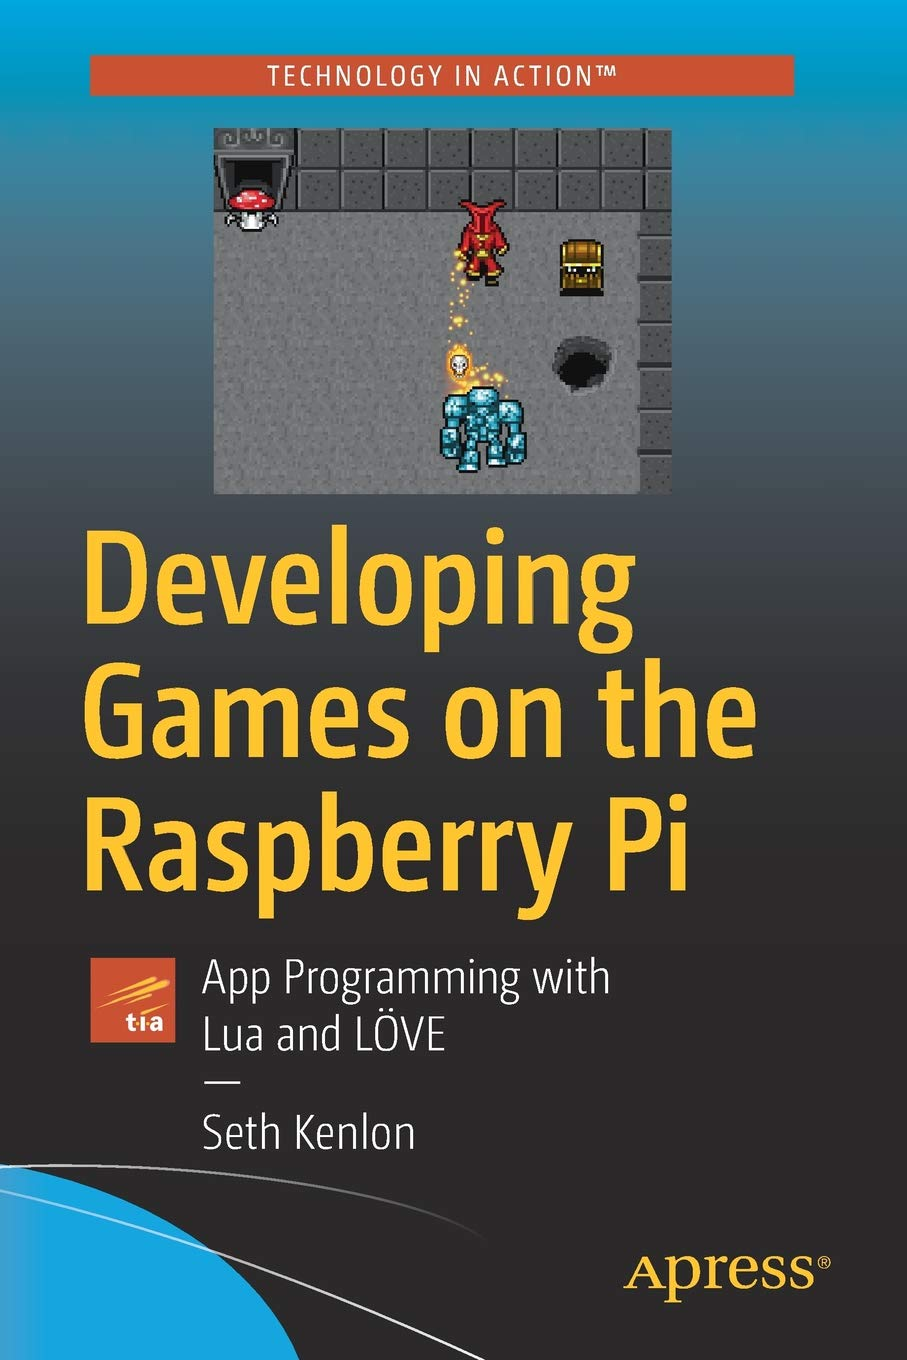 Developing Games on the Raspberry Pi: App Programming with